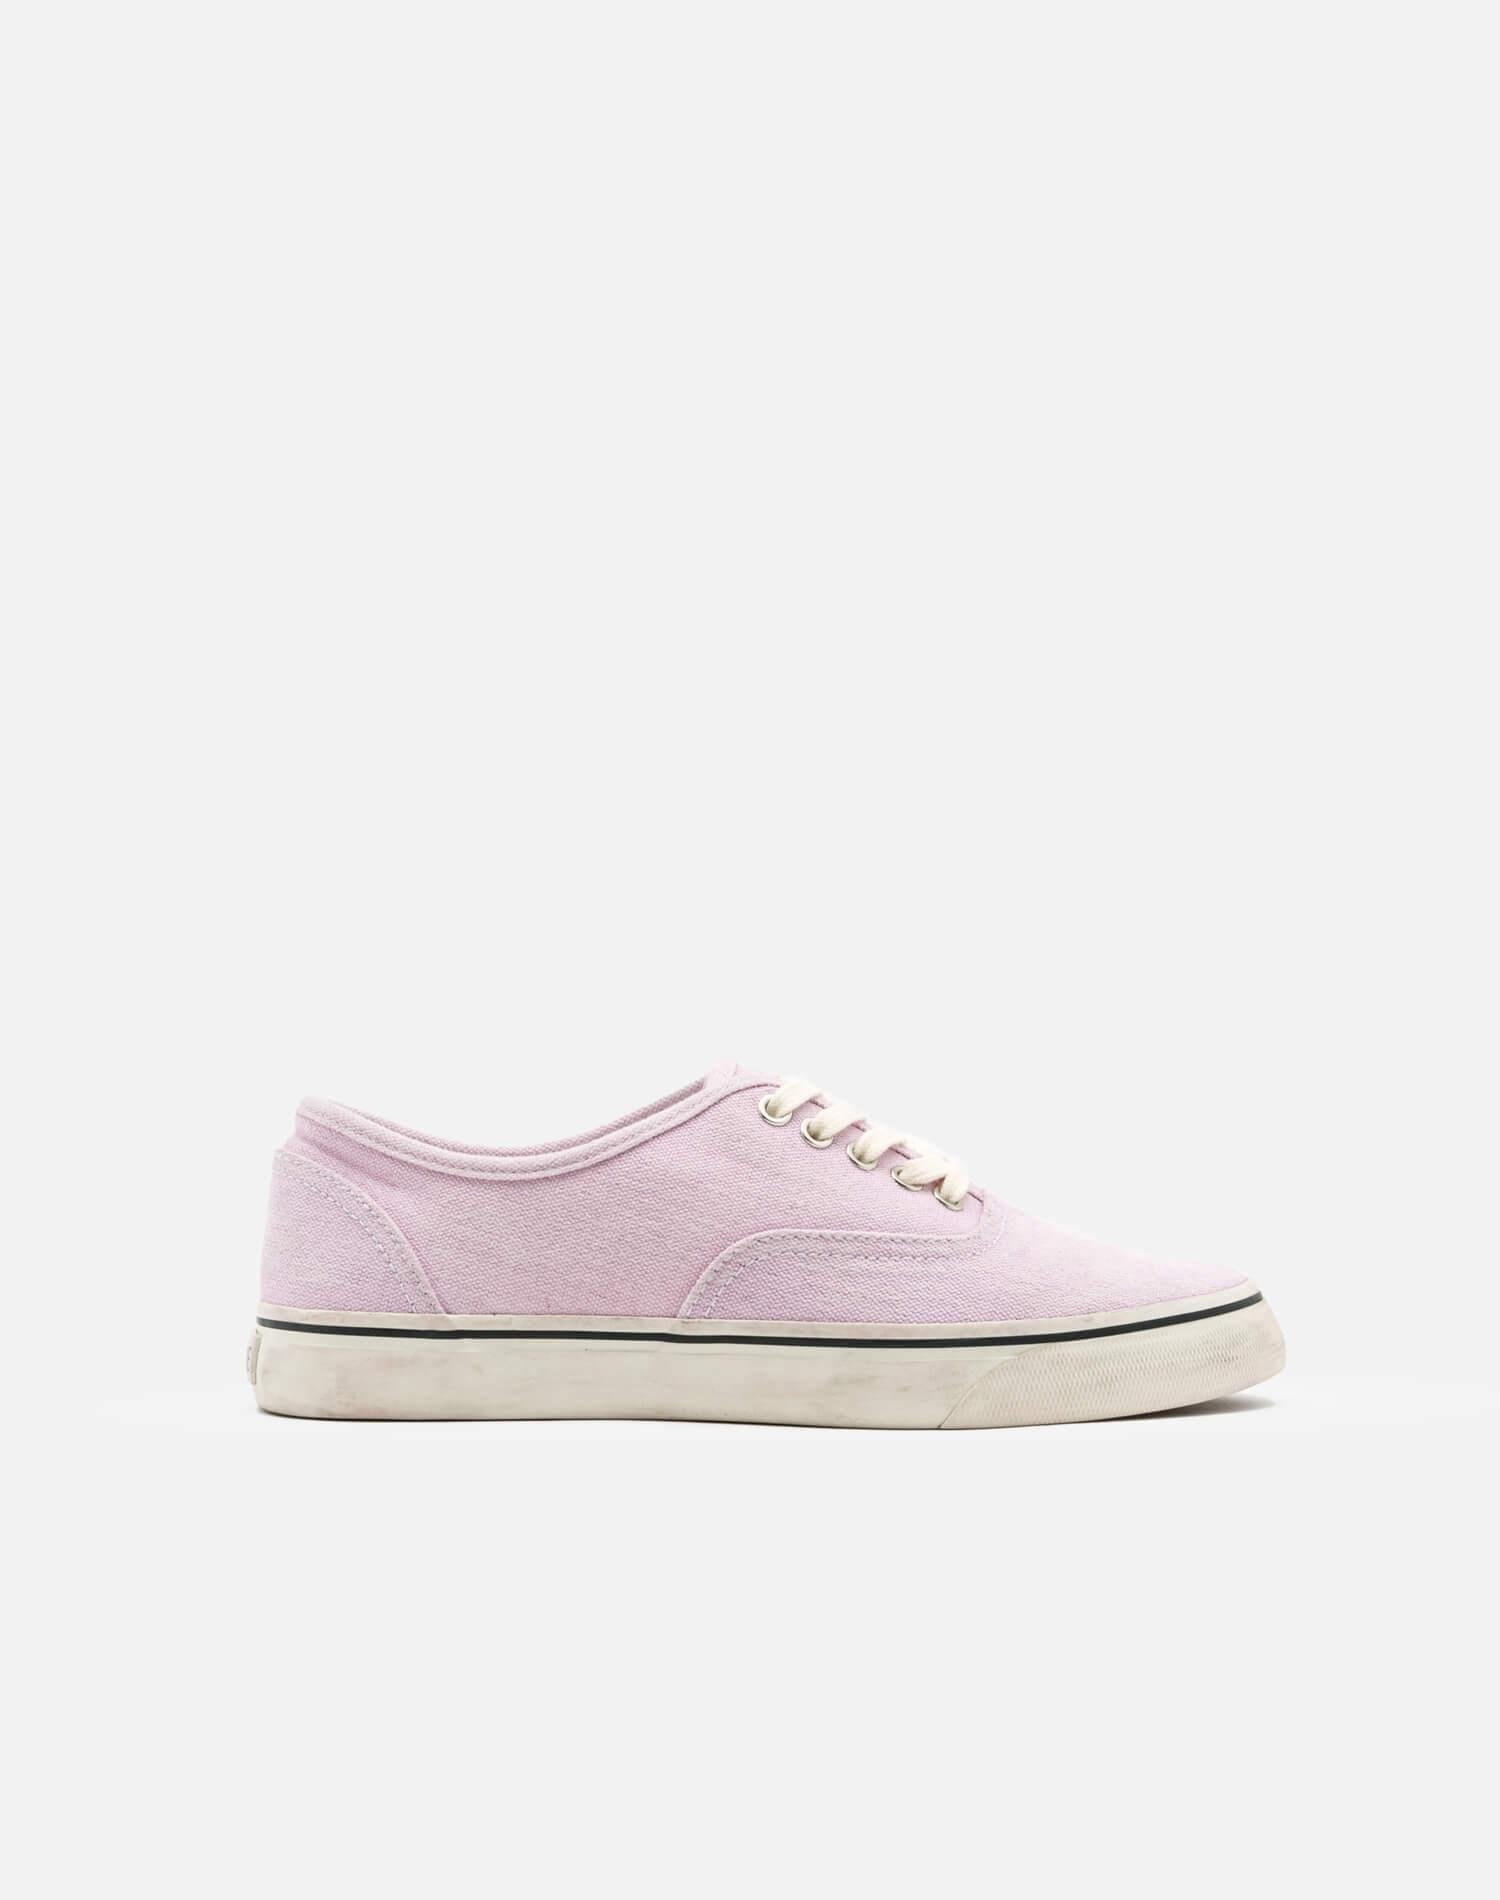 70s Low Top Skate - Faded Lilac